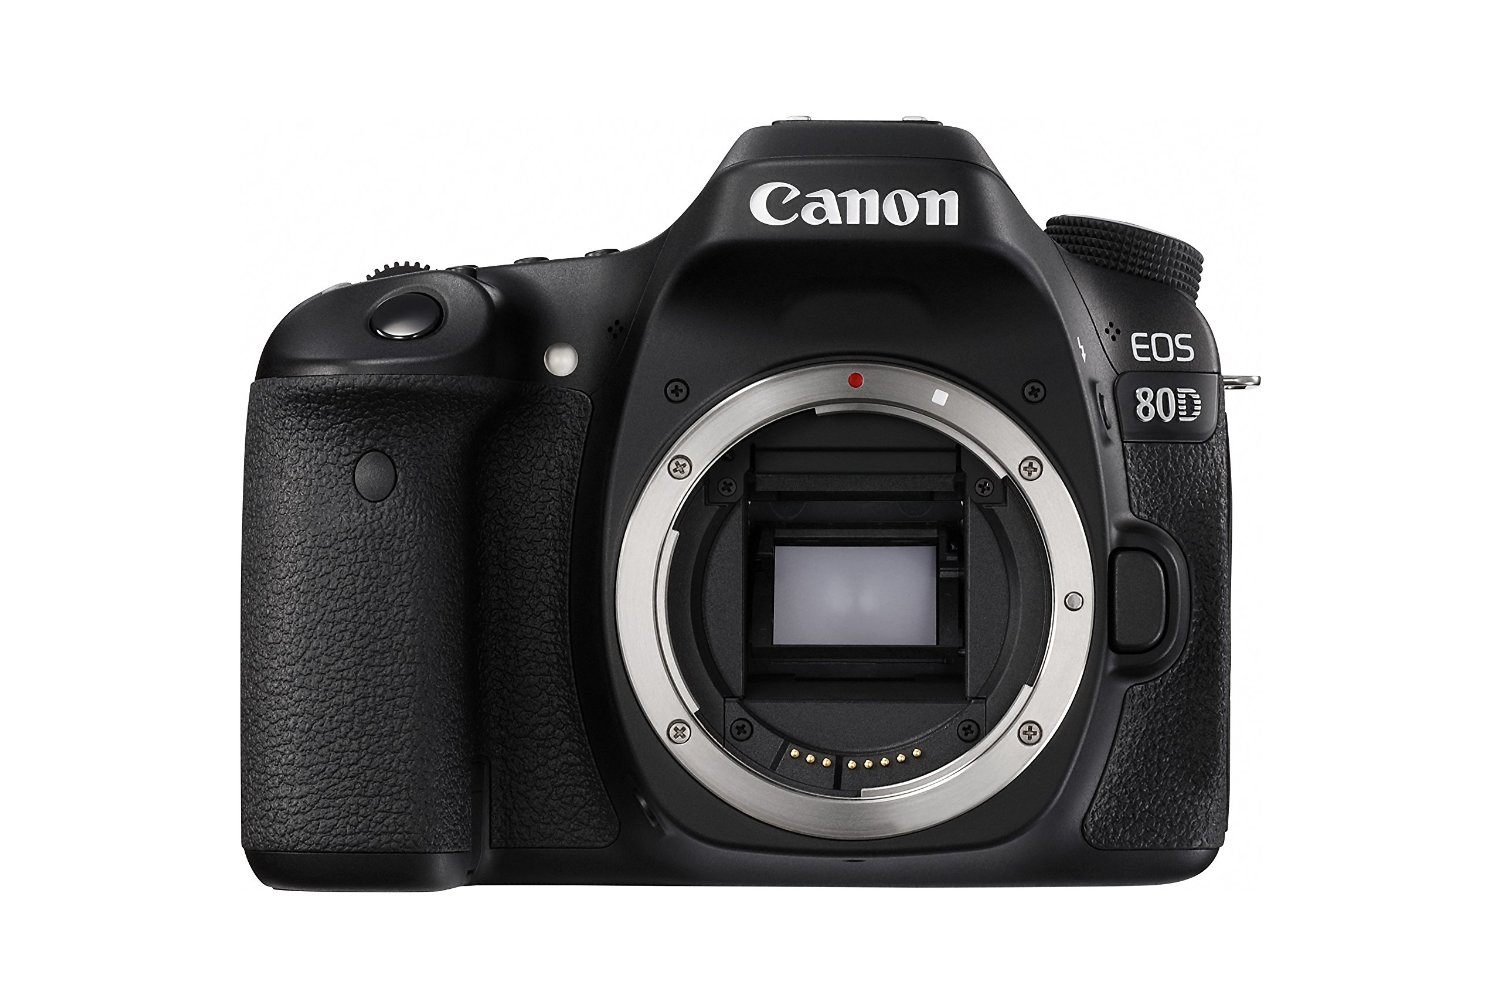 Canon 80D via Amazon | https://www.roseclearfield.com